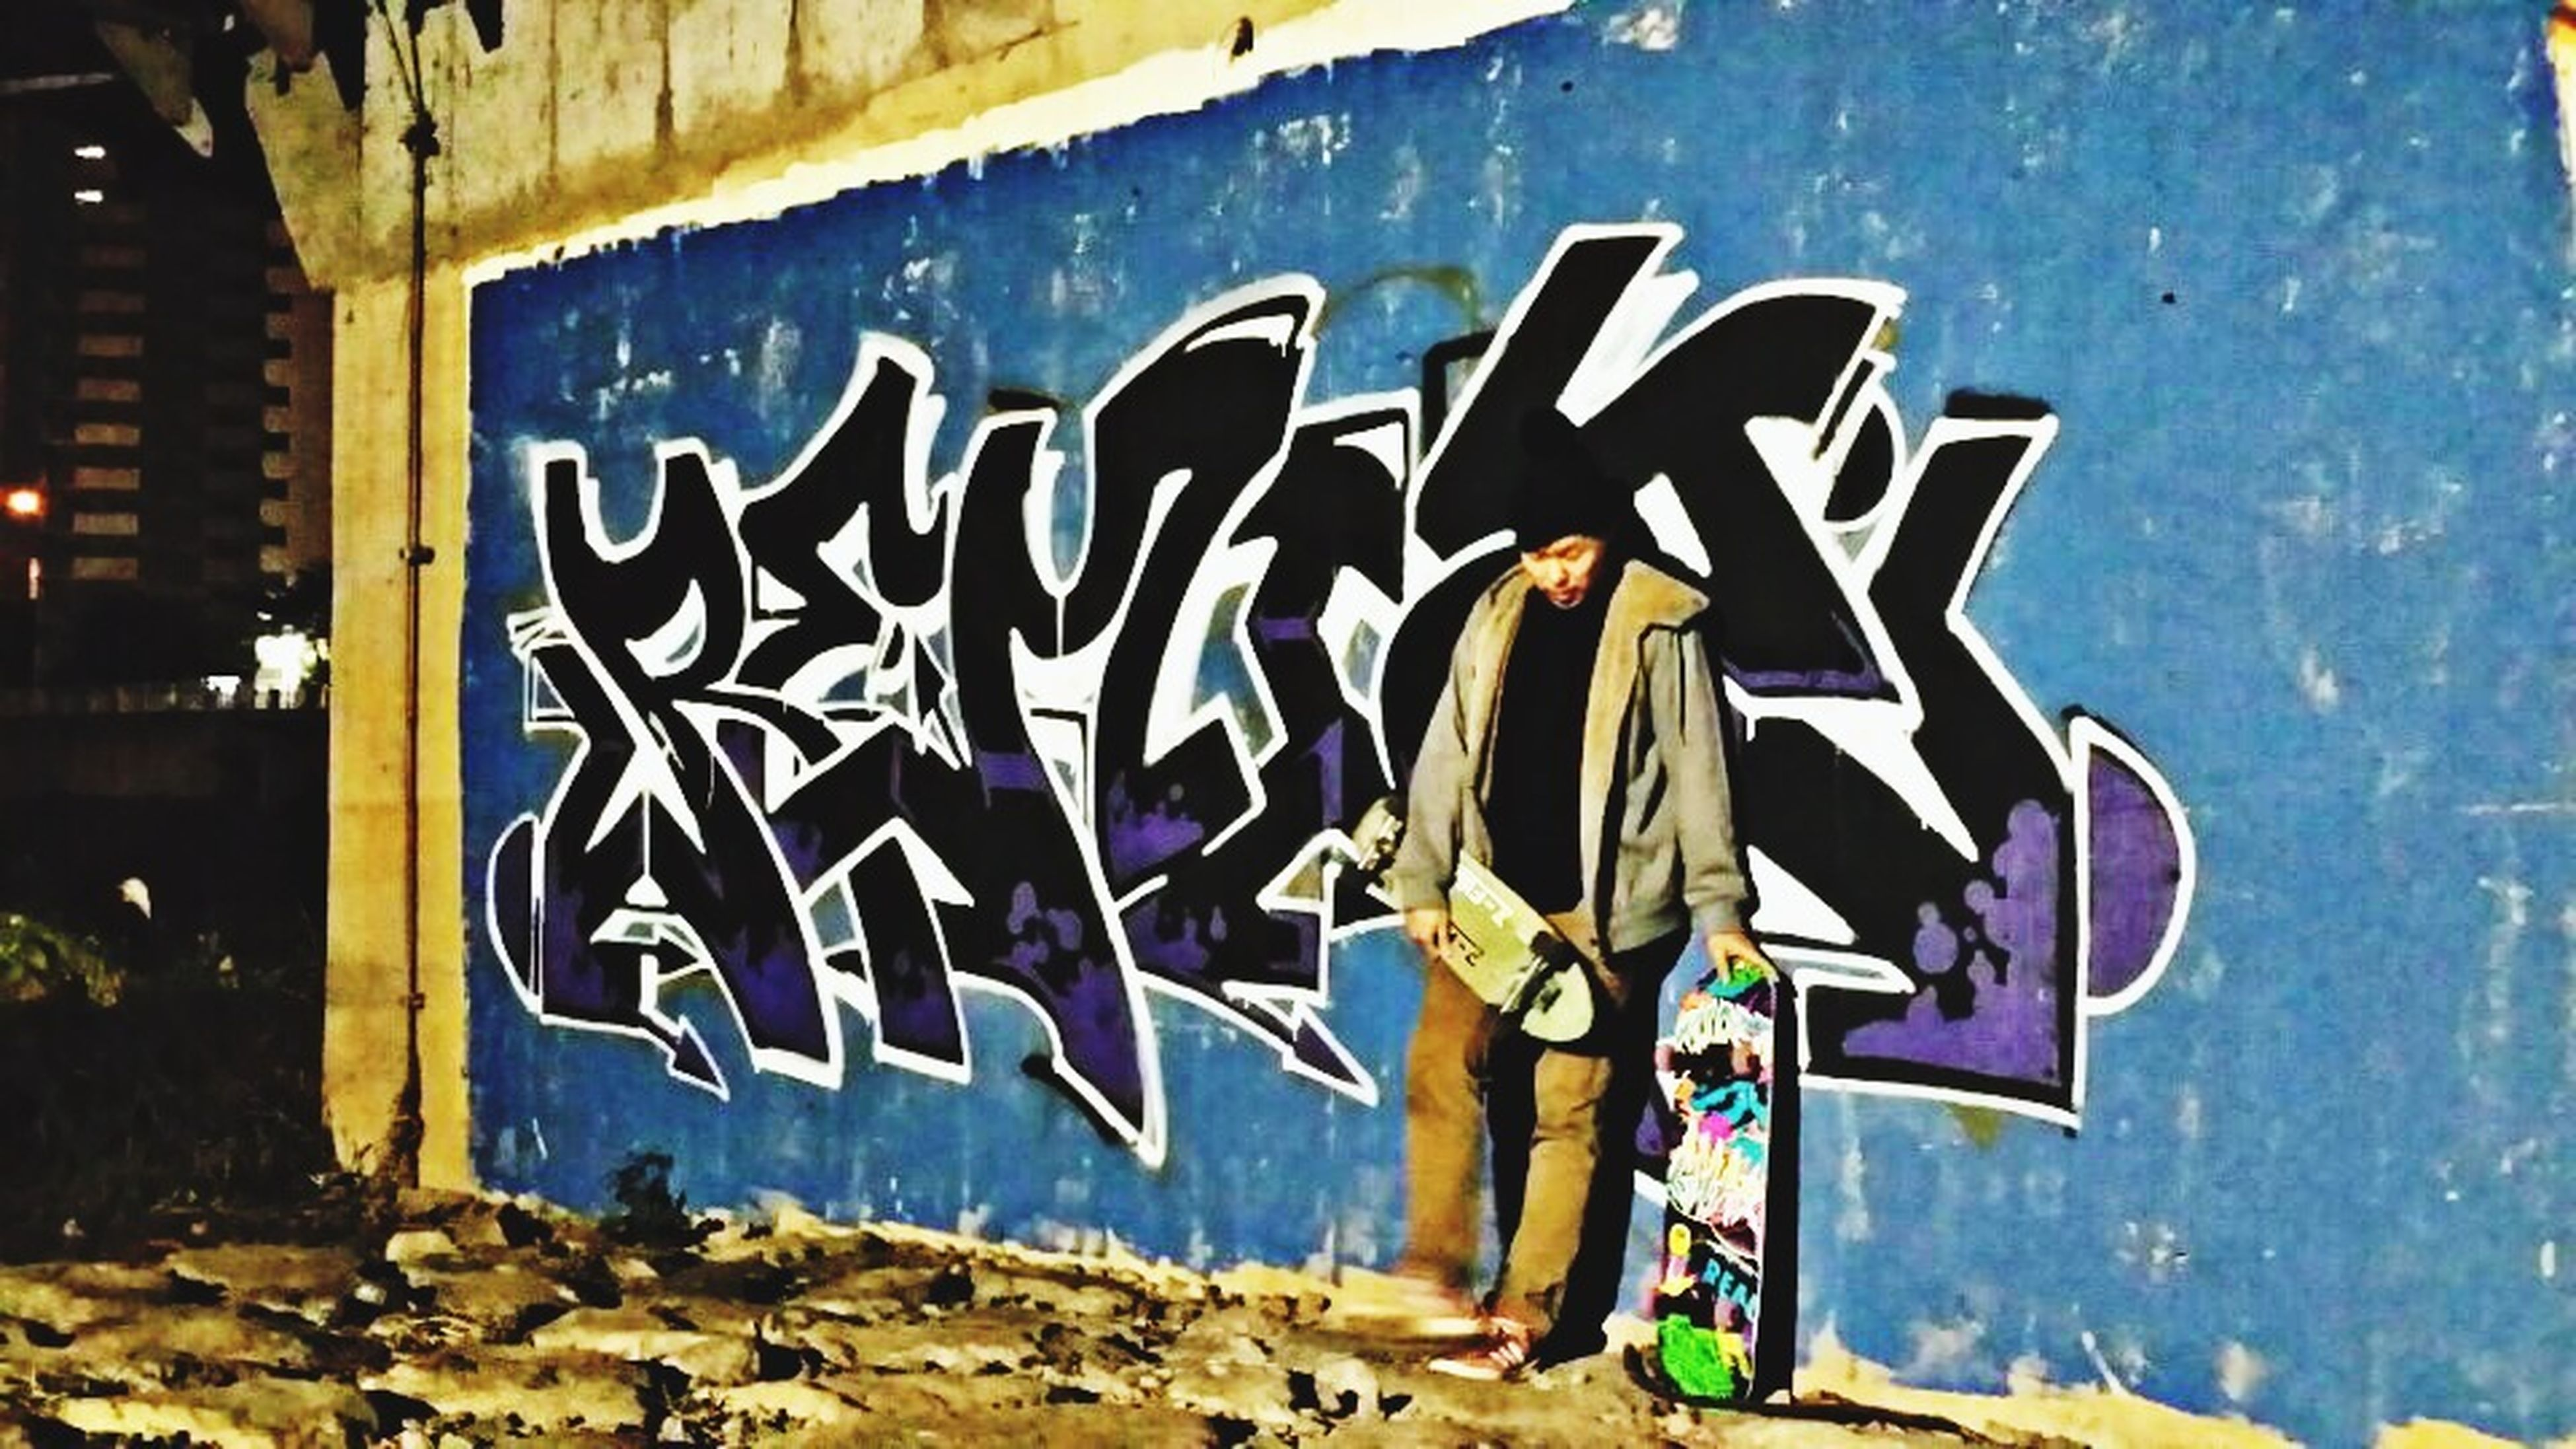 graffiti, creativity, art, art and craft, wall - building feature, built structure, blue, architecture, building exterior, wall, text, no people, outdoors, day, communication, street art, close-up, human representation, western script, multi colored